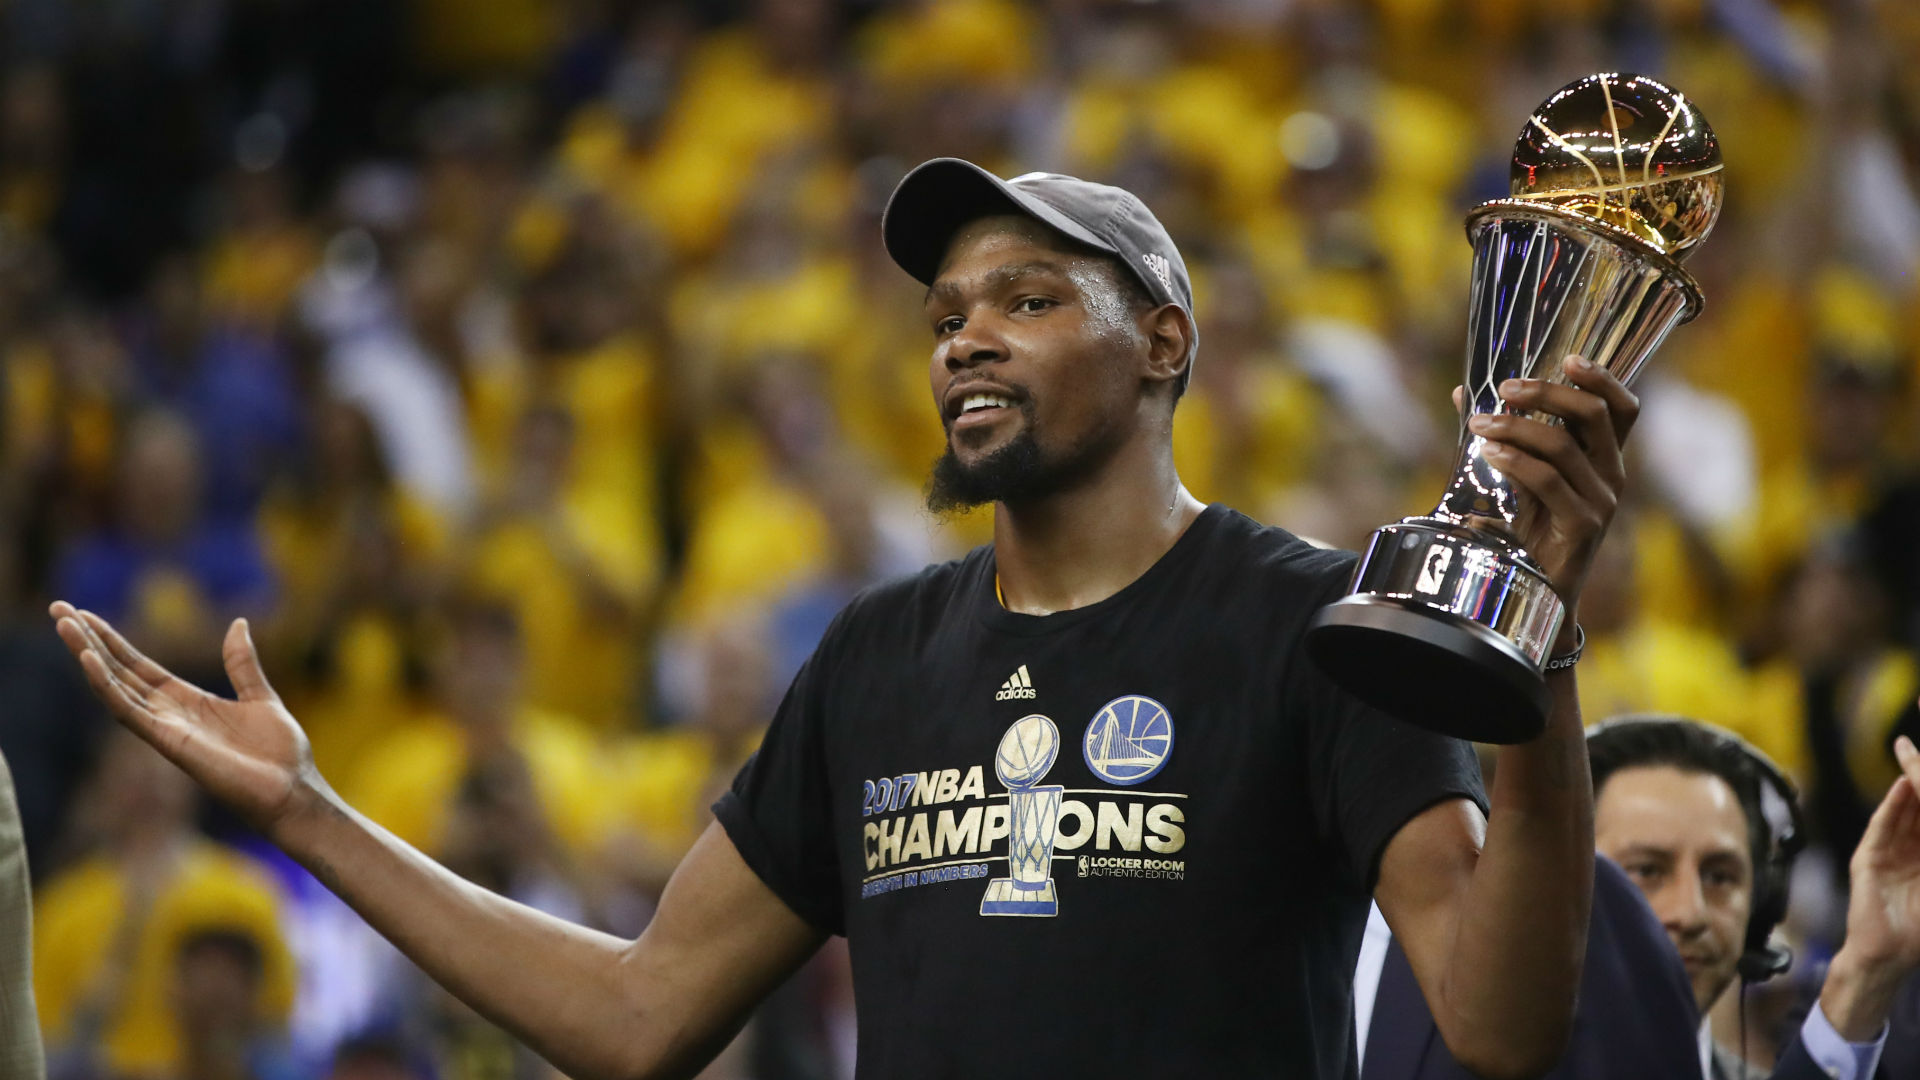 Golden State Warriors Celebrate NBA Championship With Parade